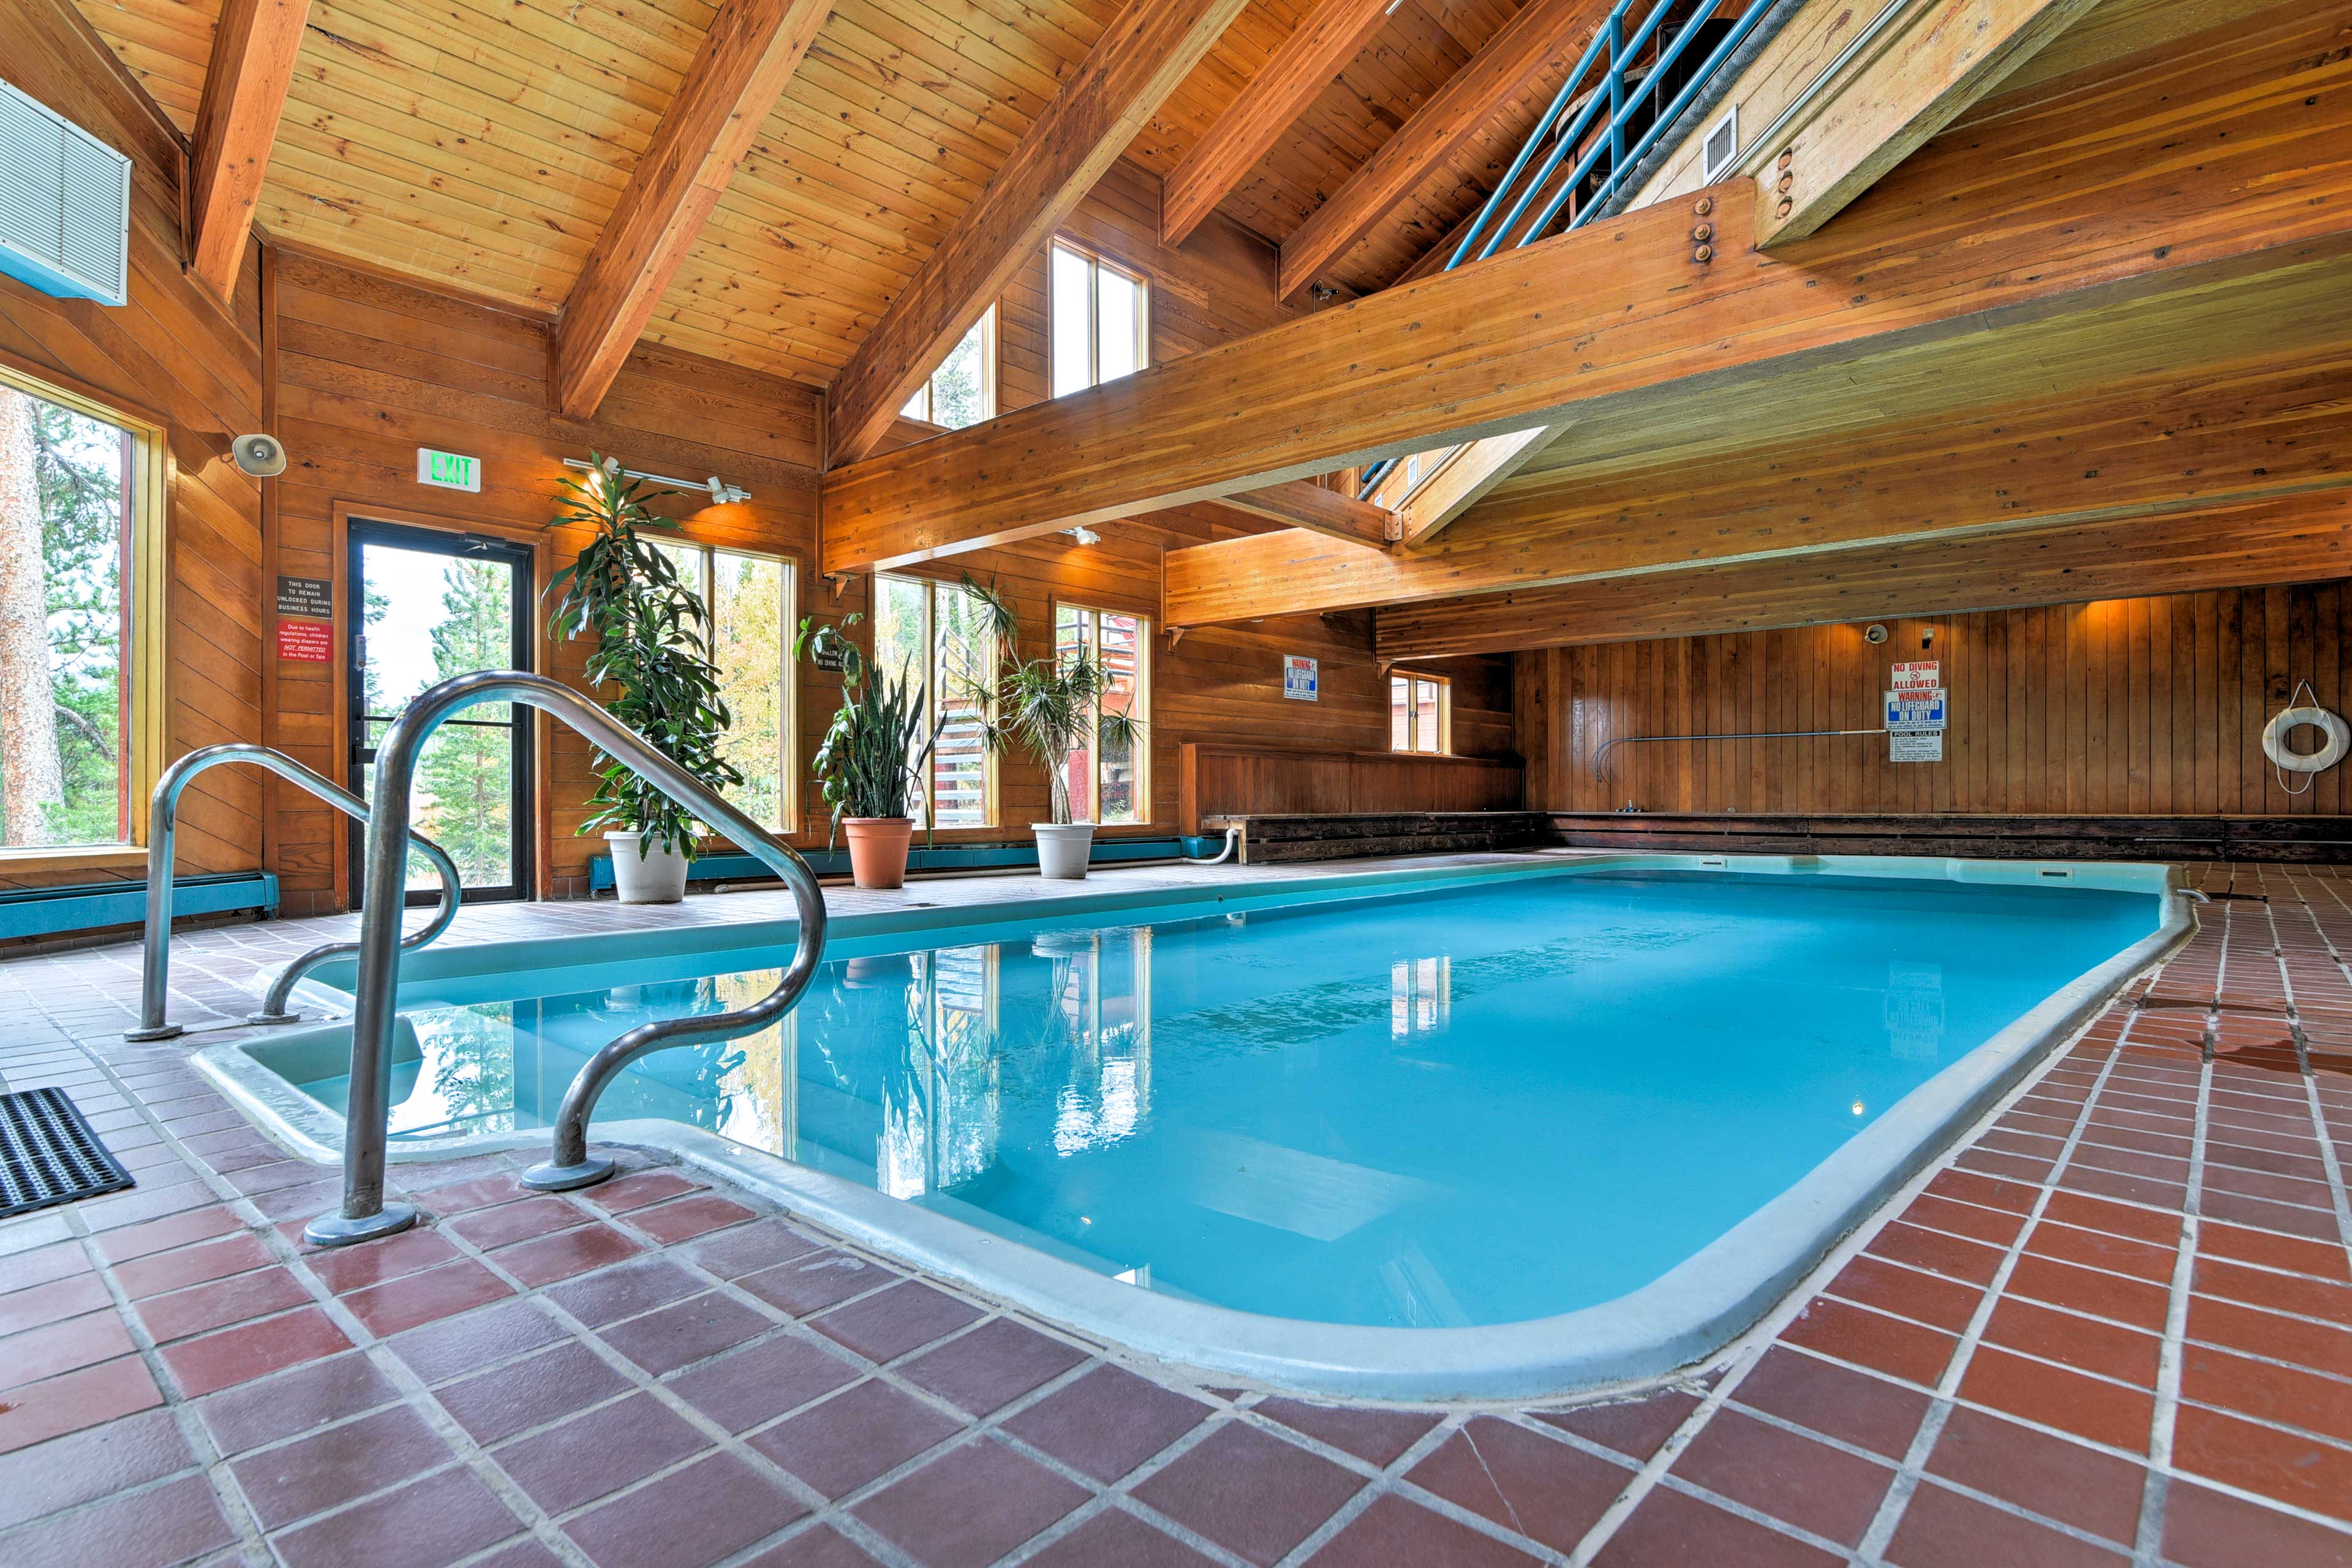 With access to top-notch community amenities, this home for 6 is 5-star.